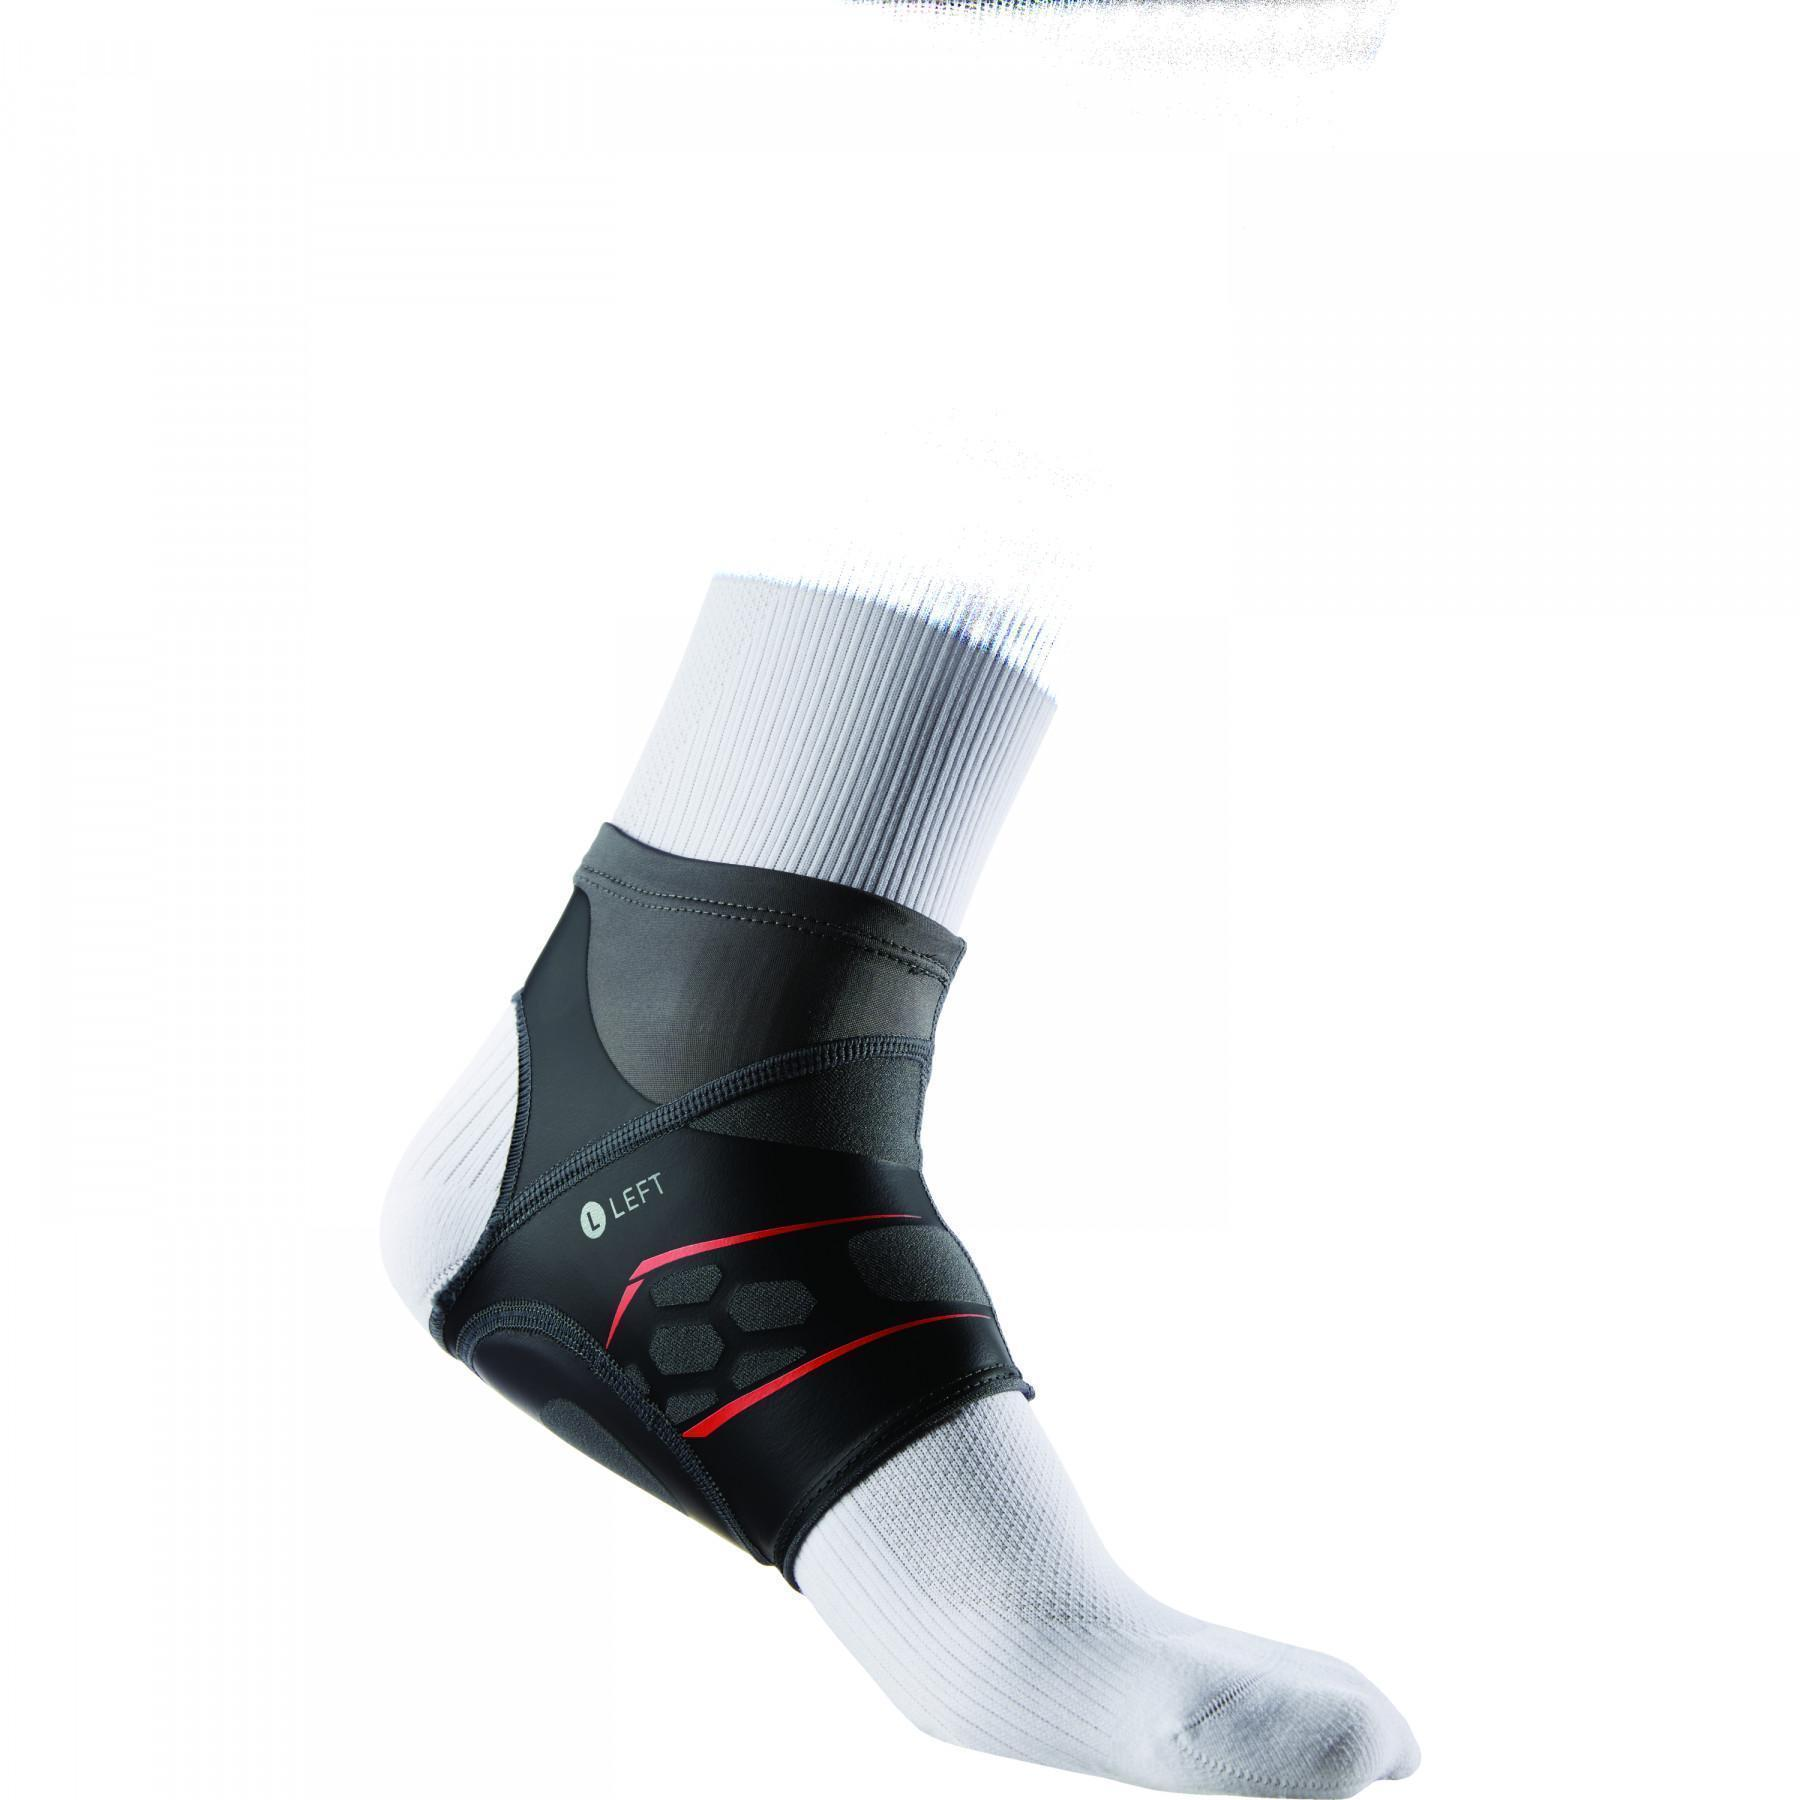 Anklet McDavid Plantar Fasciitis Runners' Therapy (droite)